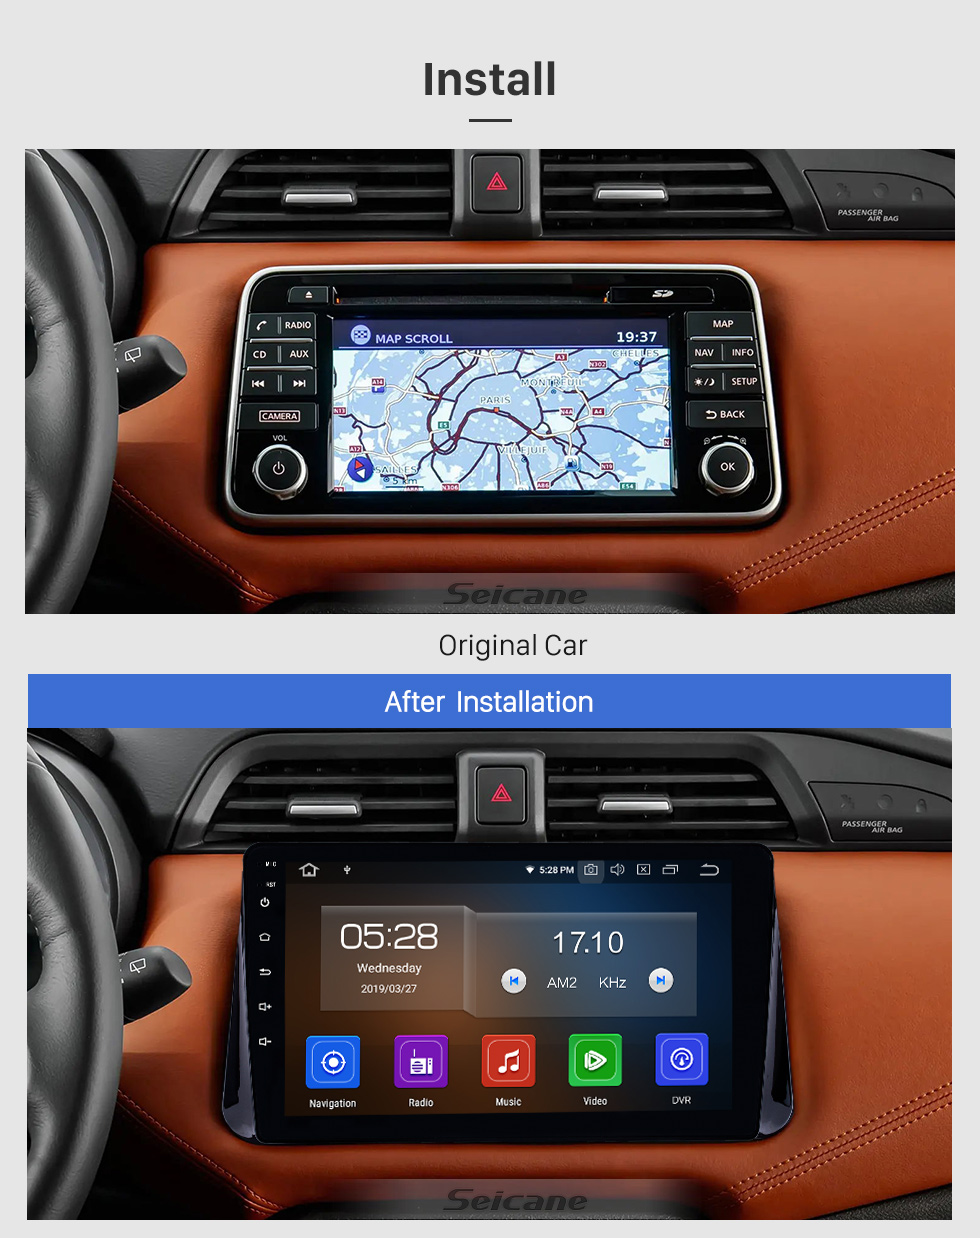 Seicane 10,1 zoll 2017 nissan micra android 9,0 gps navigation radio bluetooth hd touchscreen aux usb musik carplay unterstützung 1080 p video spiegel link